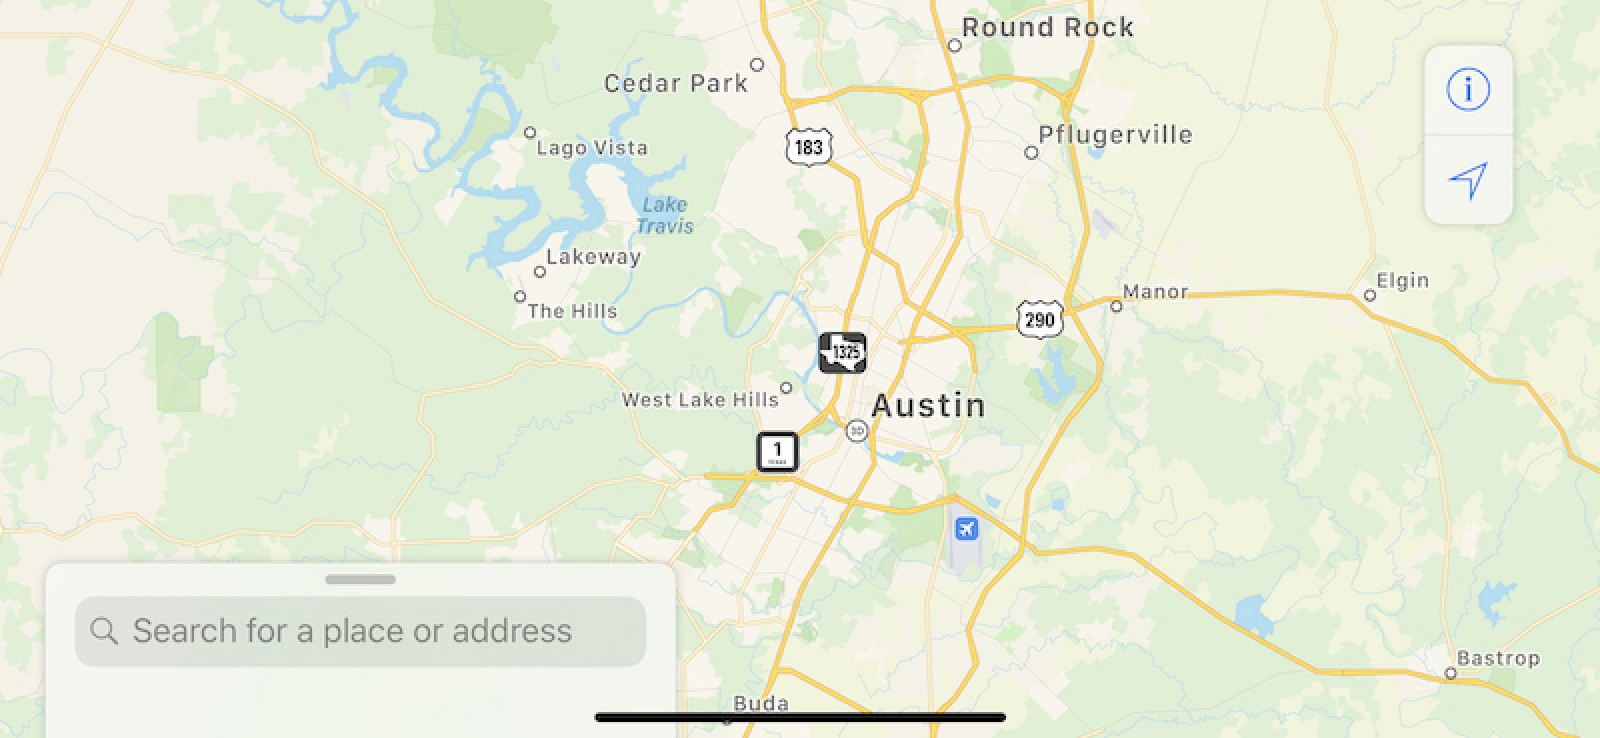 Revamped Apple Maps Now Available in Texas, Louisiana, and Southern